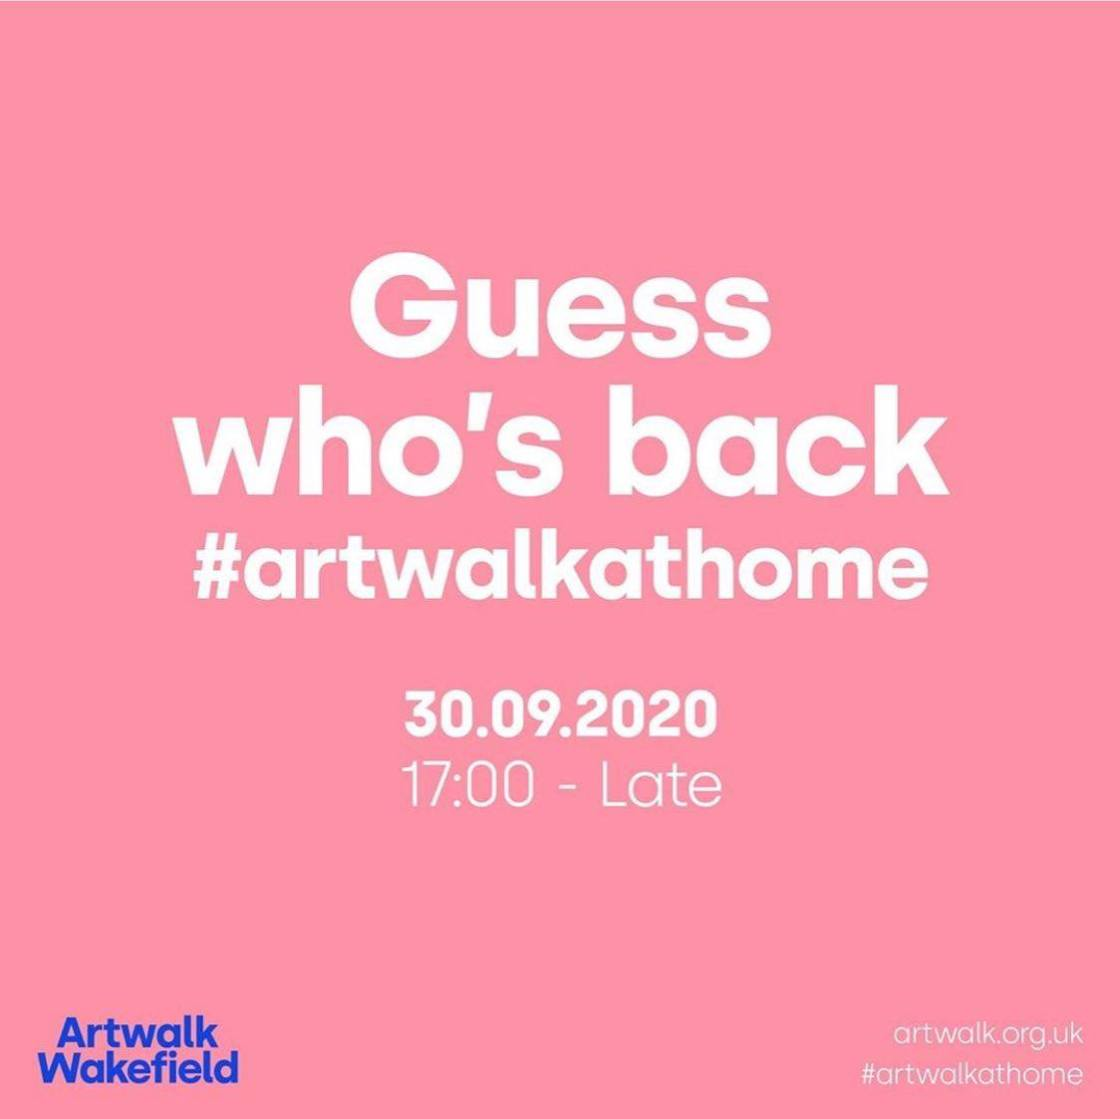 Tonight is the Wakefield Artwalk - digitally of course. Give them a follow on al...